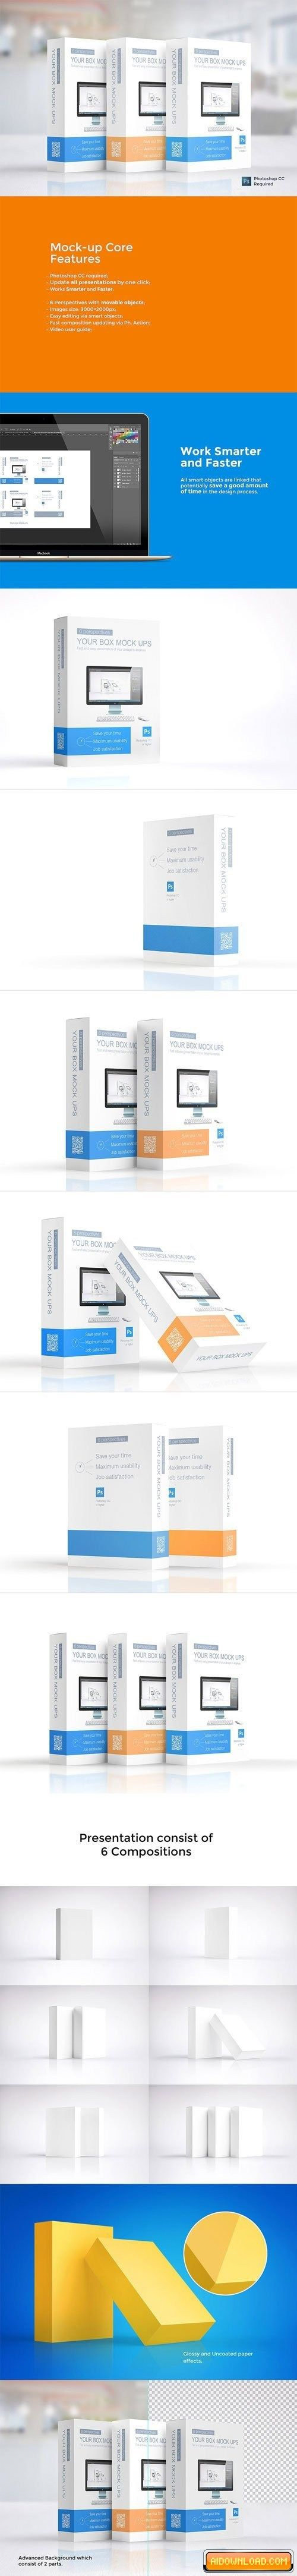 Download Multipurpose Product Box X2f Package Free Download Free Graphic Templates Fonts Logos Amp Icons Psd Ai Box Mockup Mockup Design Mockup